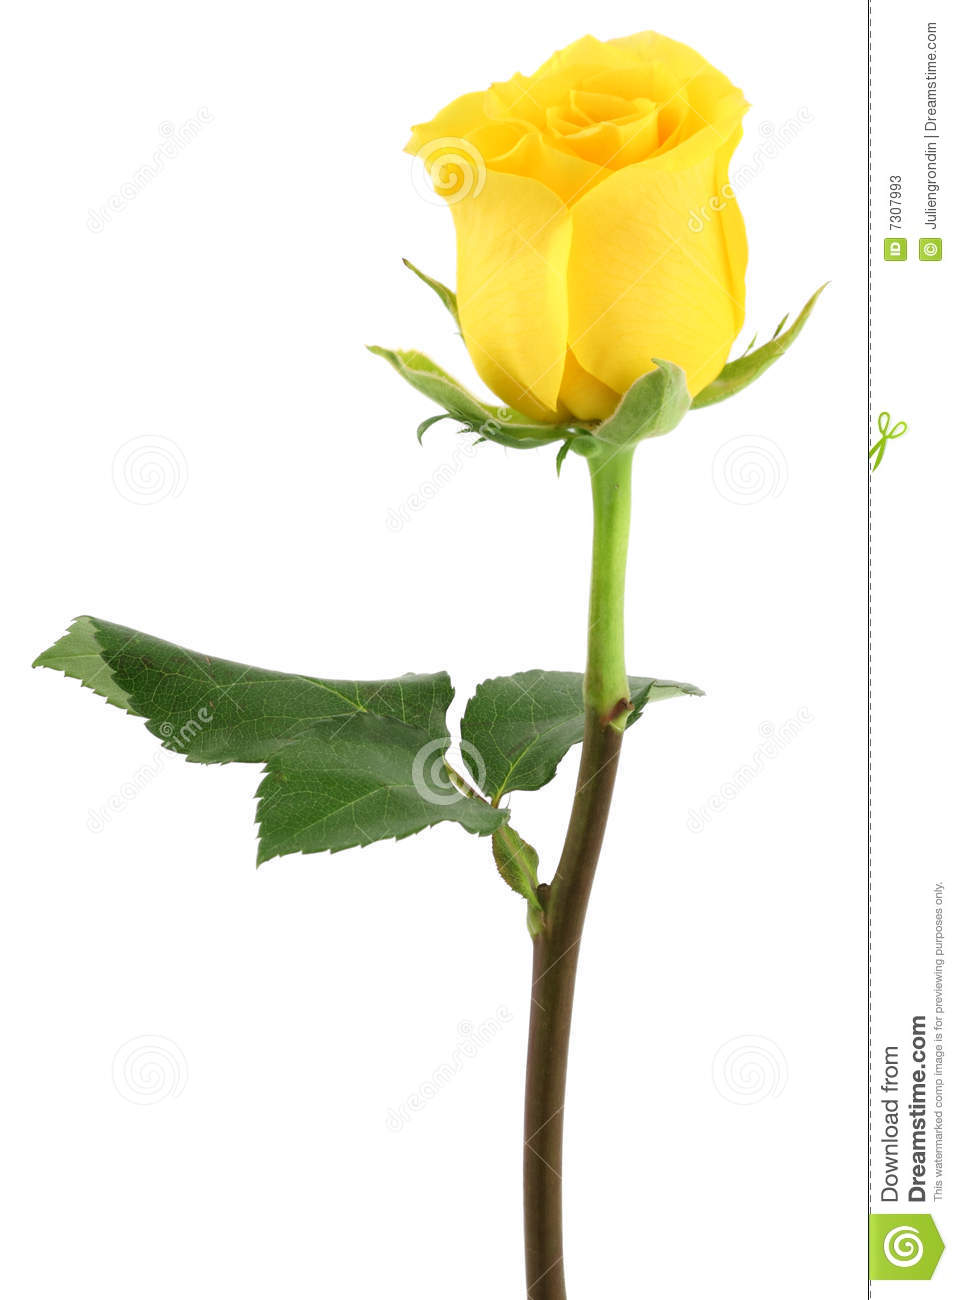 yellow rose stock image. image of bloom, yellow, nature - 7307993